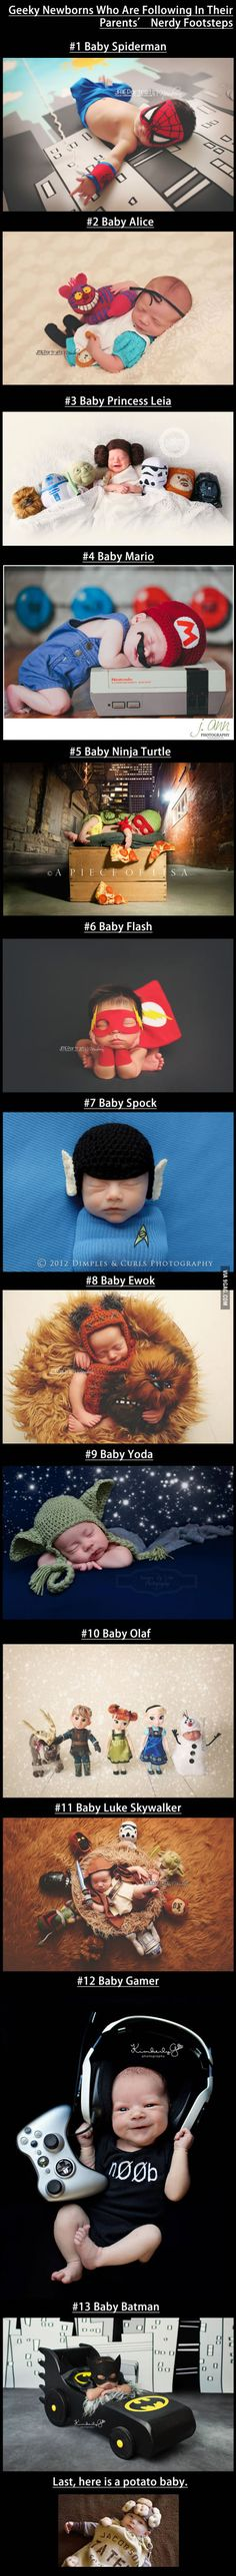 Geeky Newborns Who Are Following In Their Parents' Nerdy Footsteps